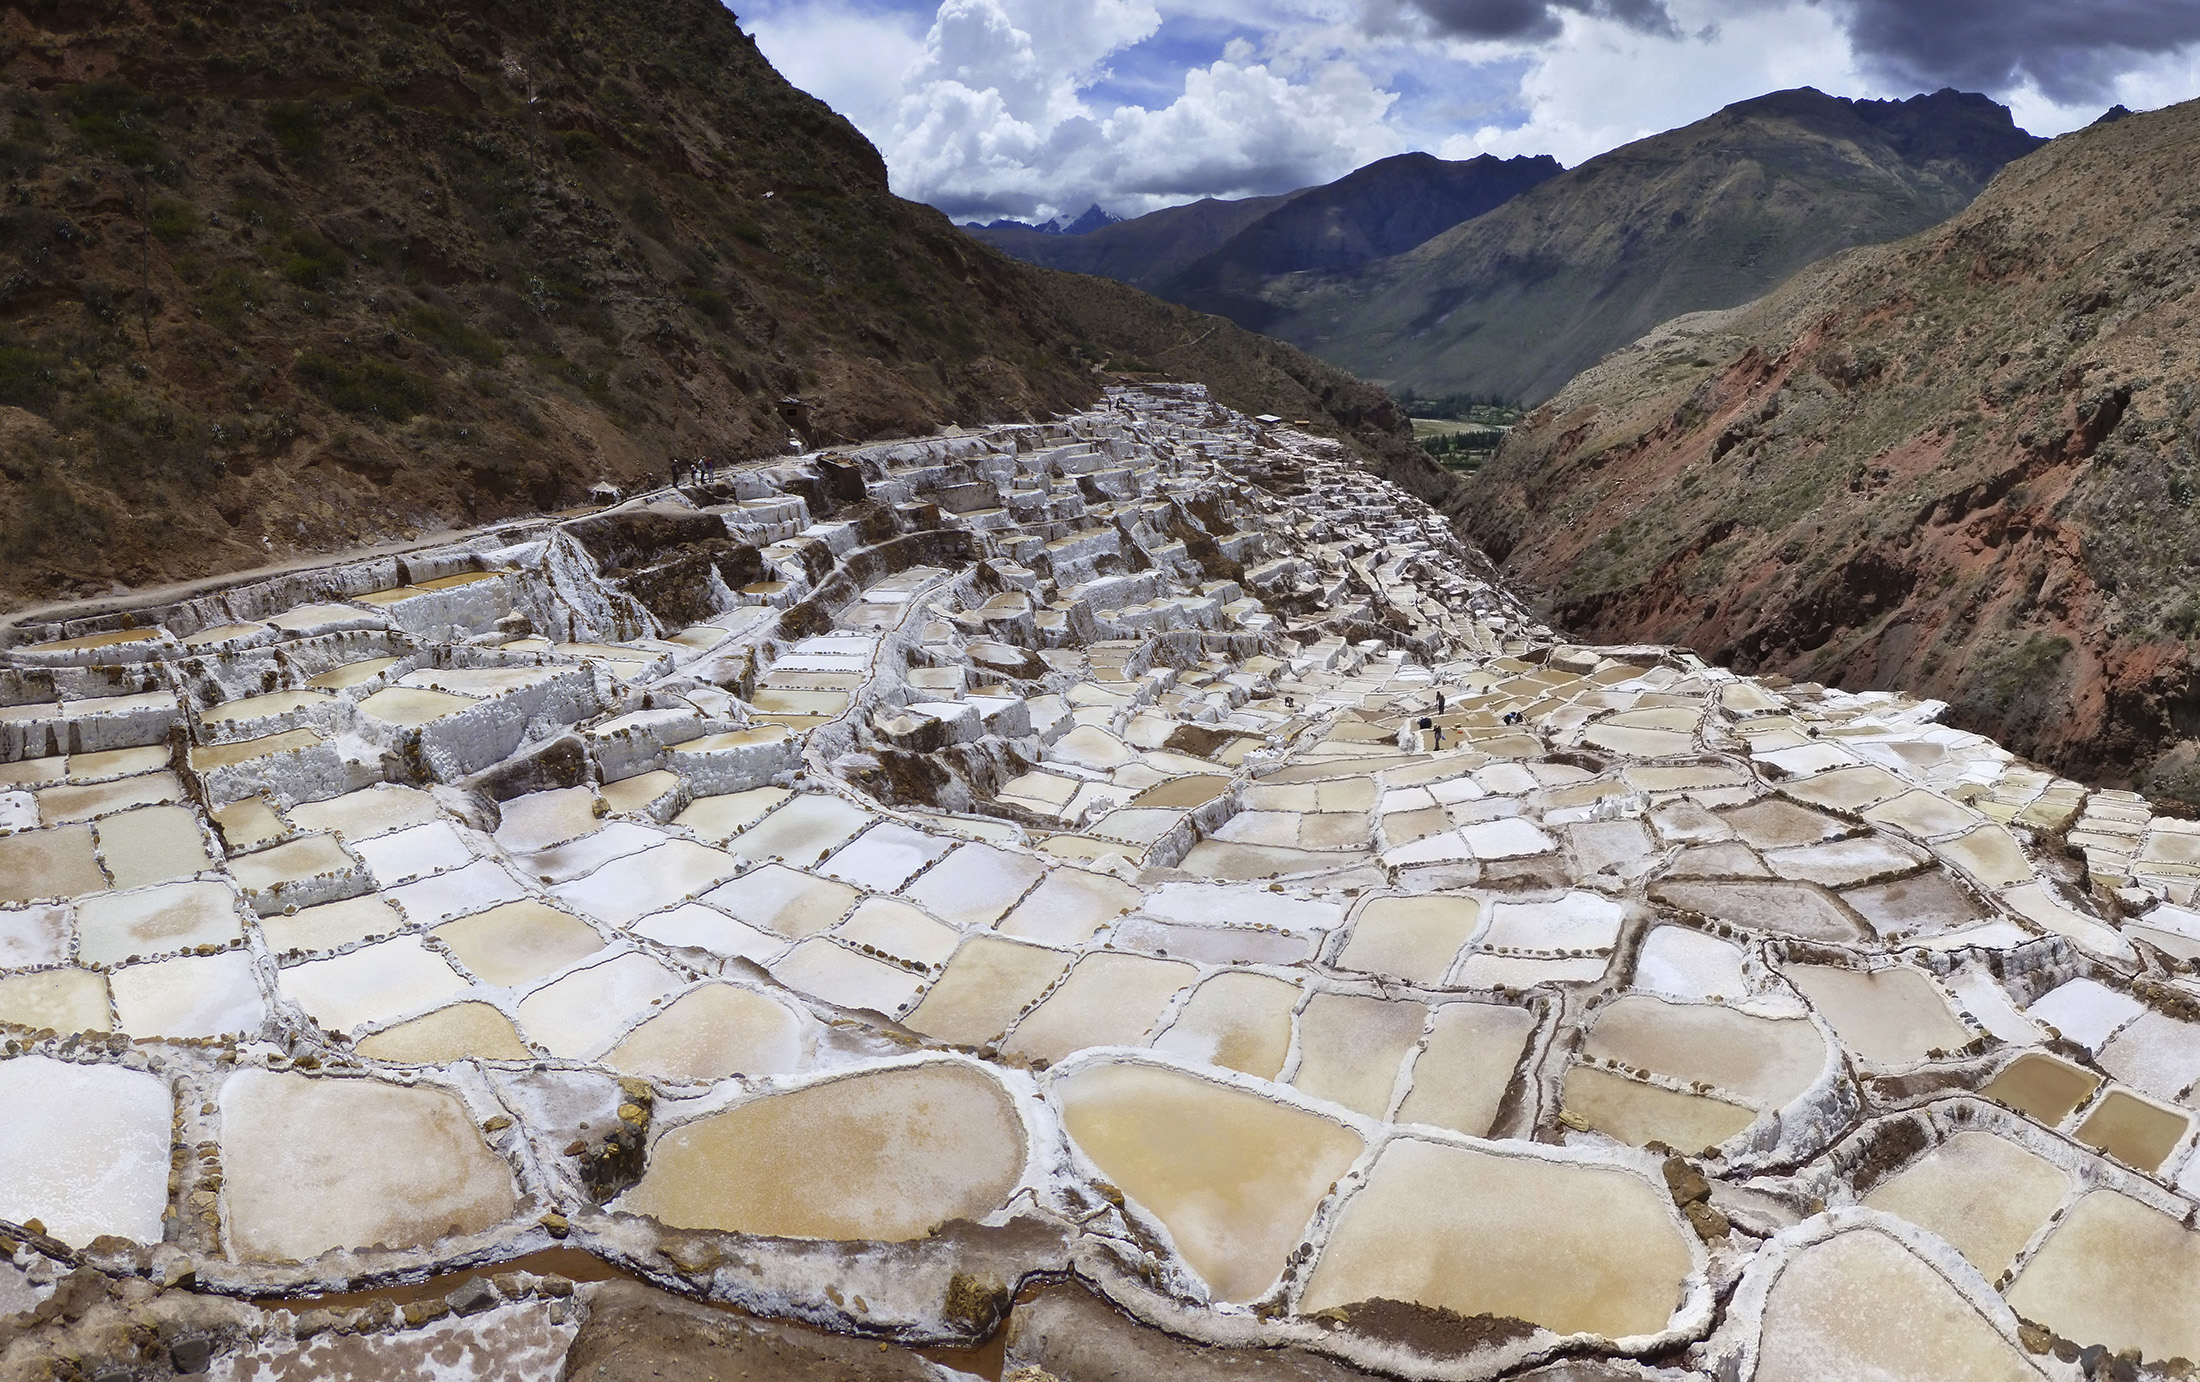 The salt pools of Salinas.